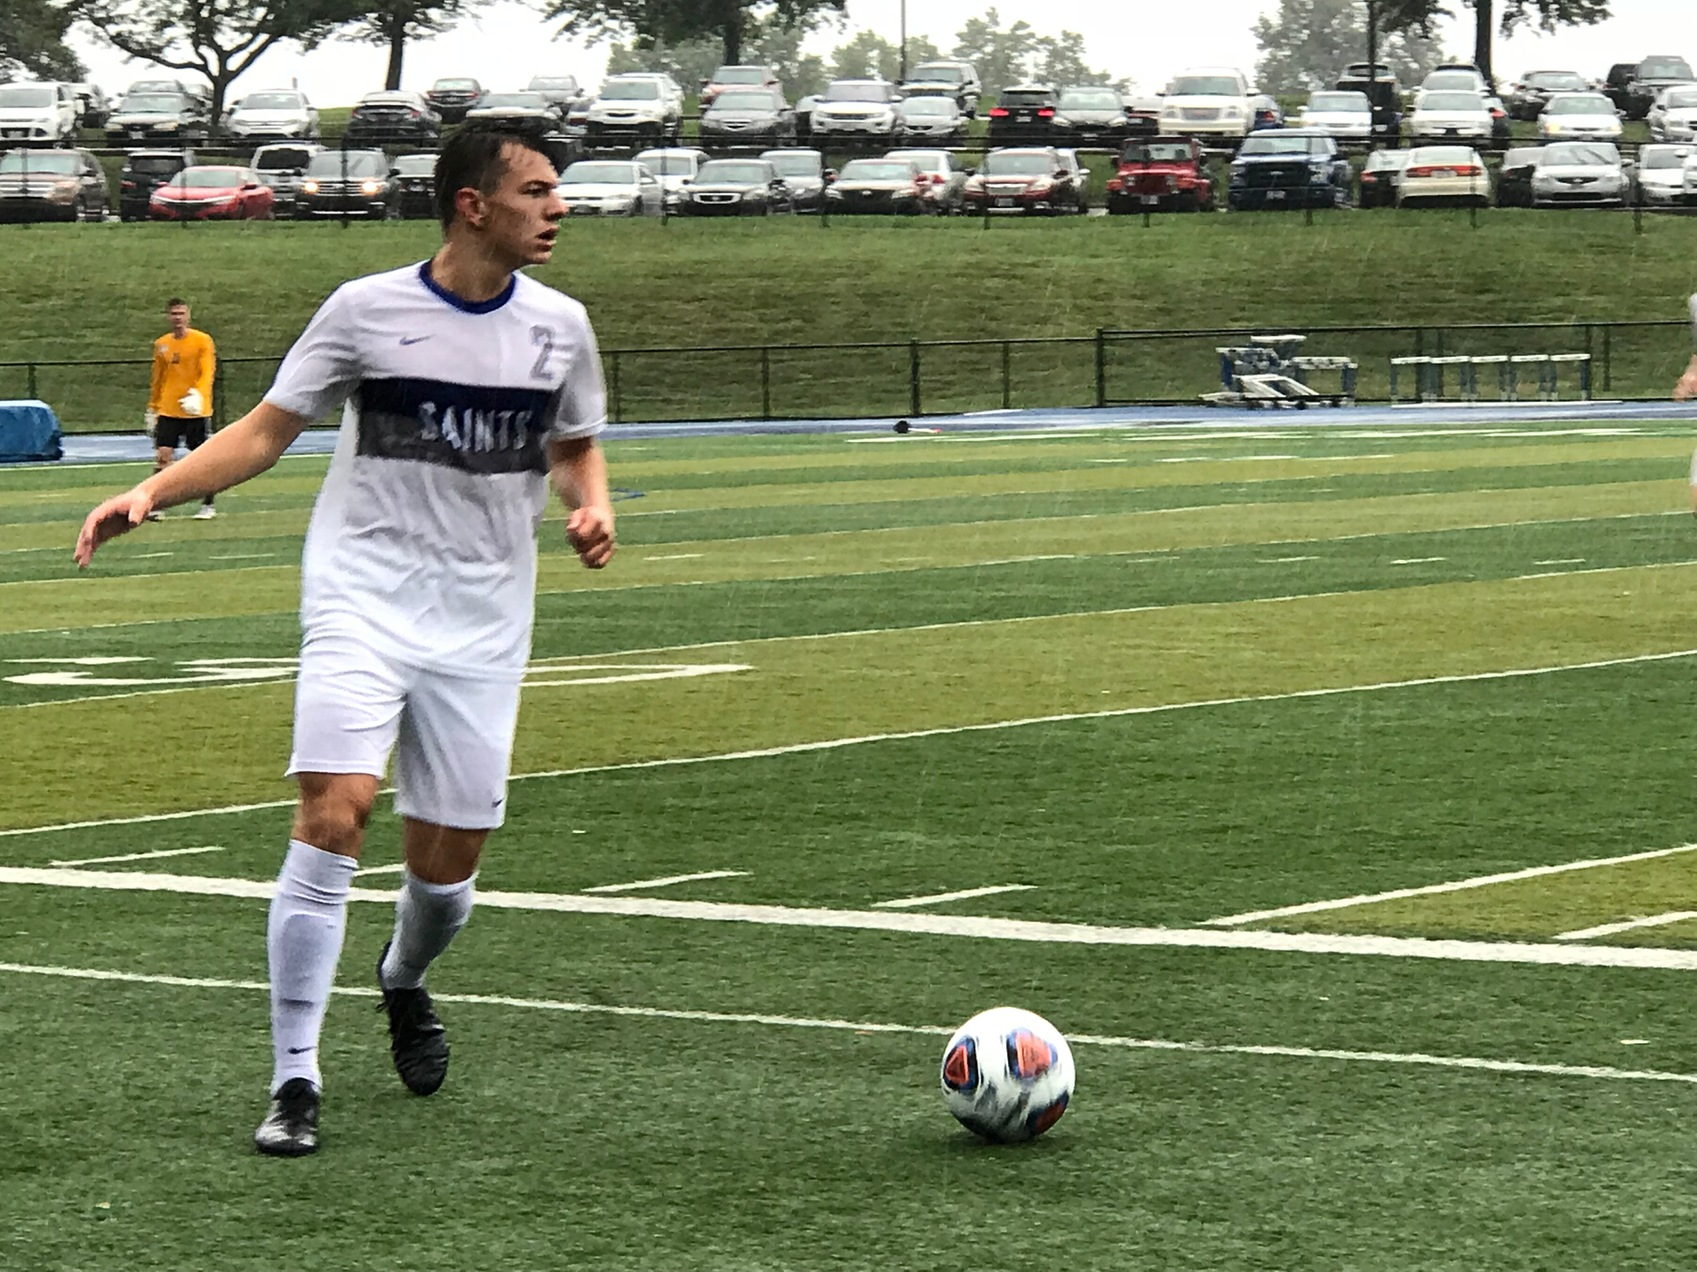 Men's Soccer Ends in a 0-0 Draw After 2OT